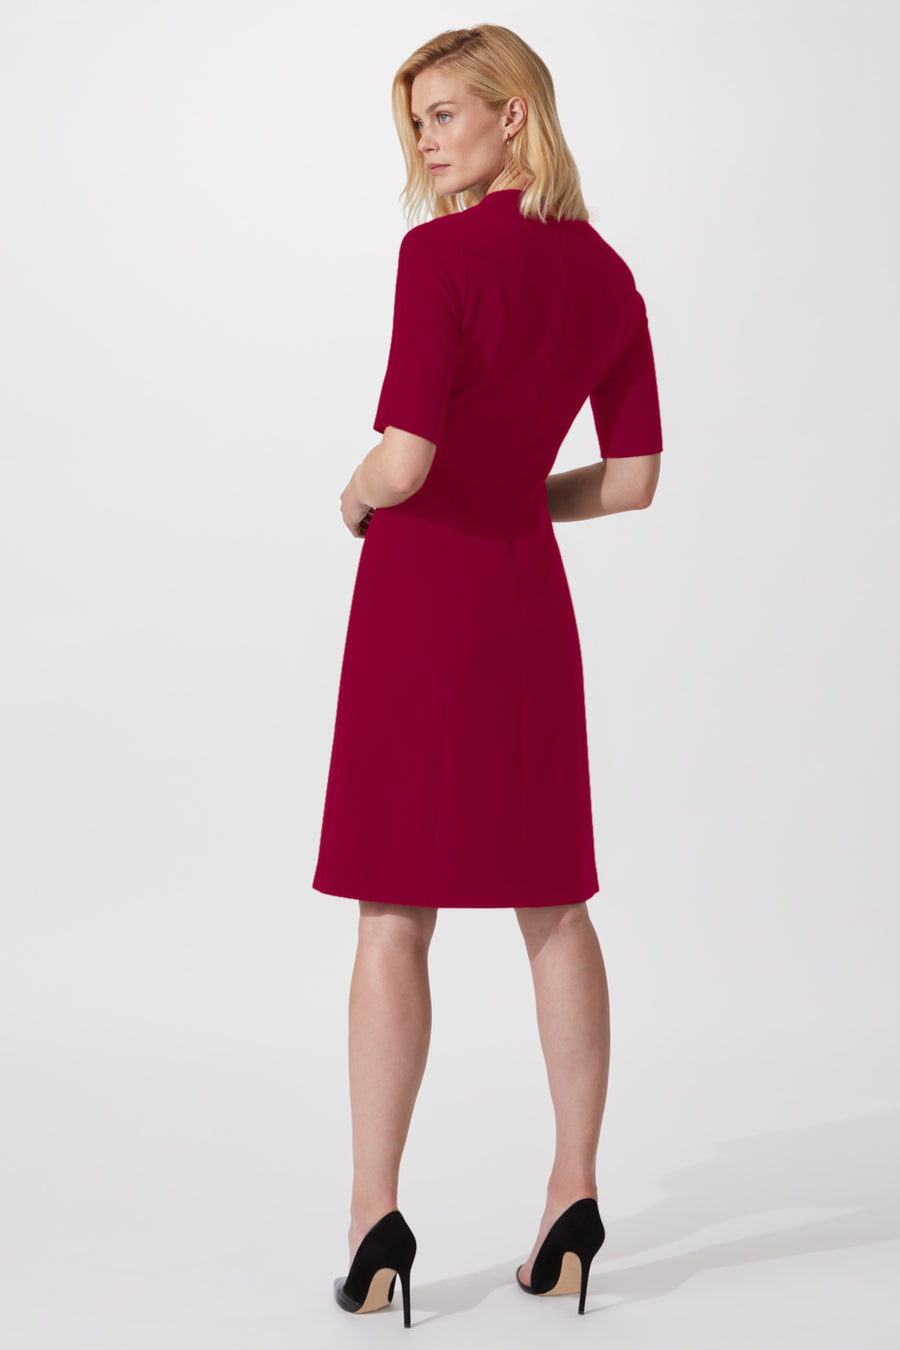 Tennyson Rosehip Dress